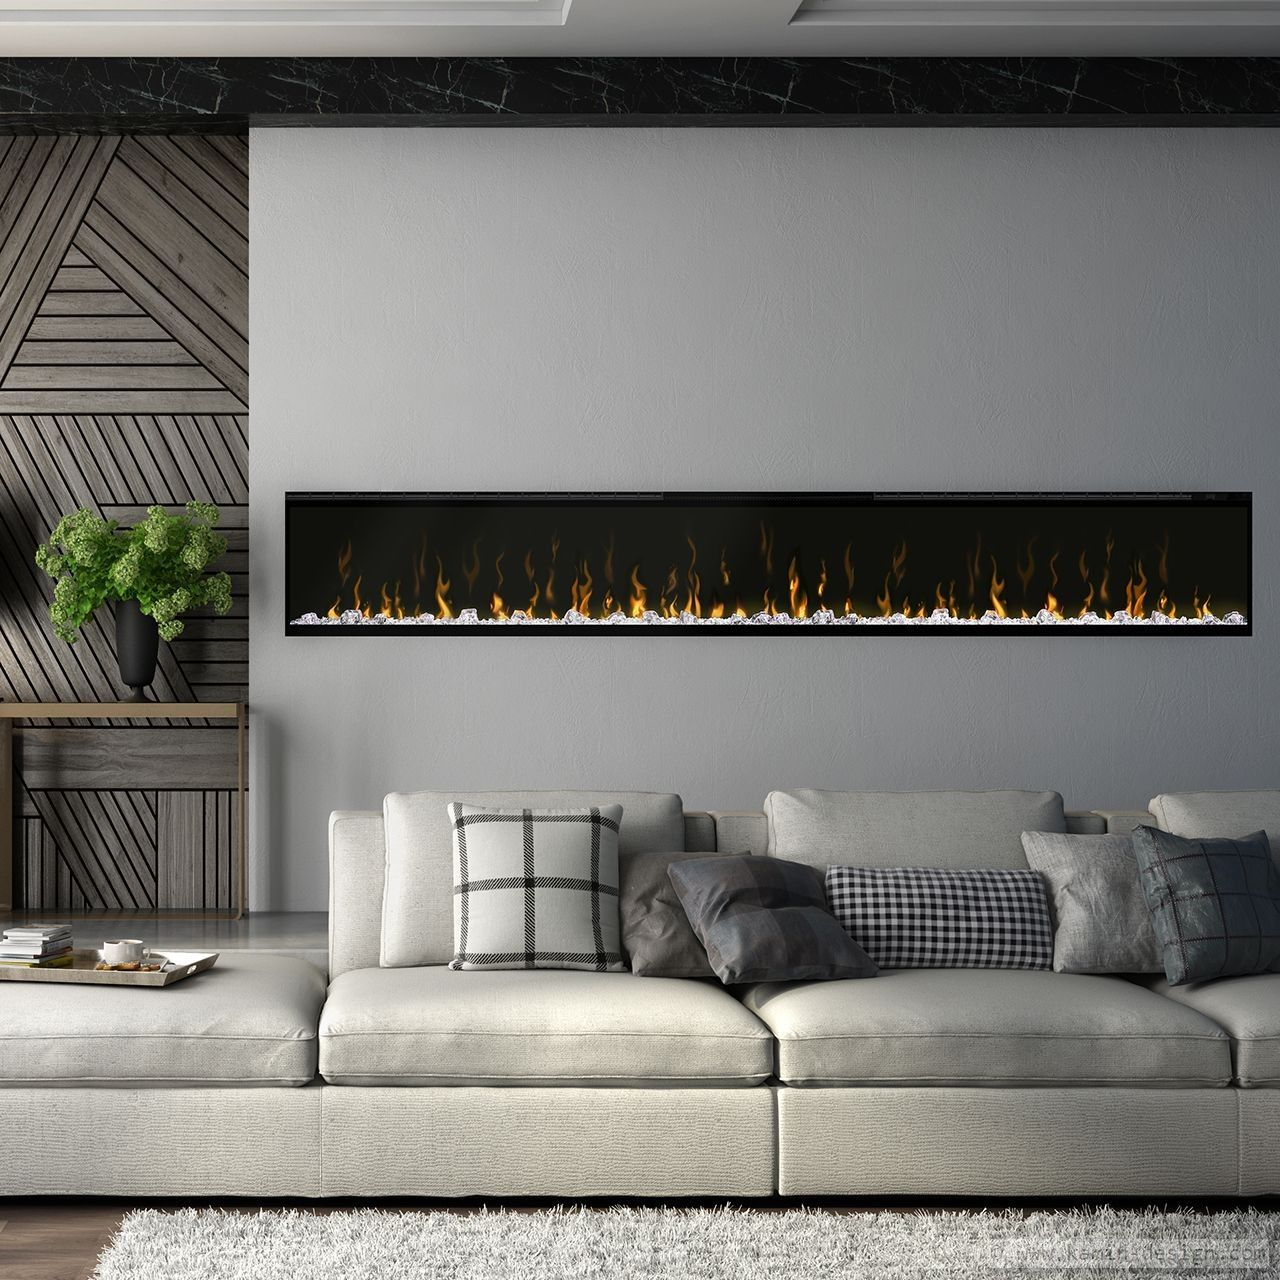 Dimplex Prisma 189 Elektrobreitwandkamin | Fireplace wall, Walls and ...